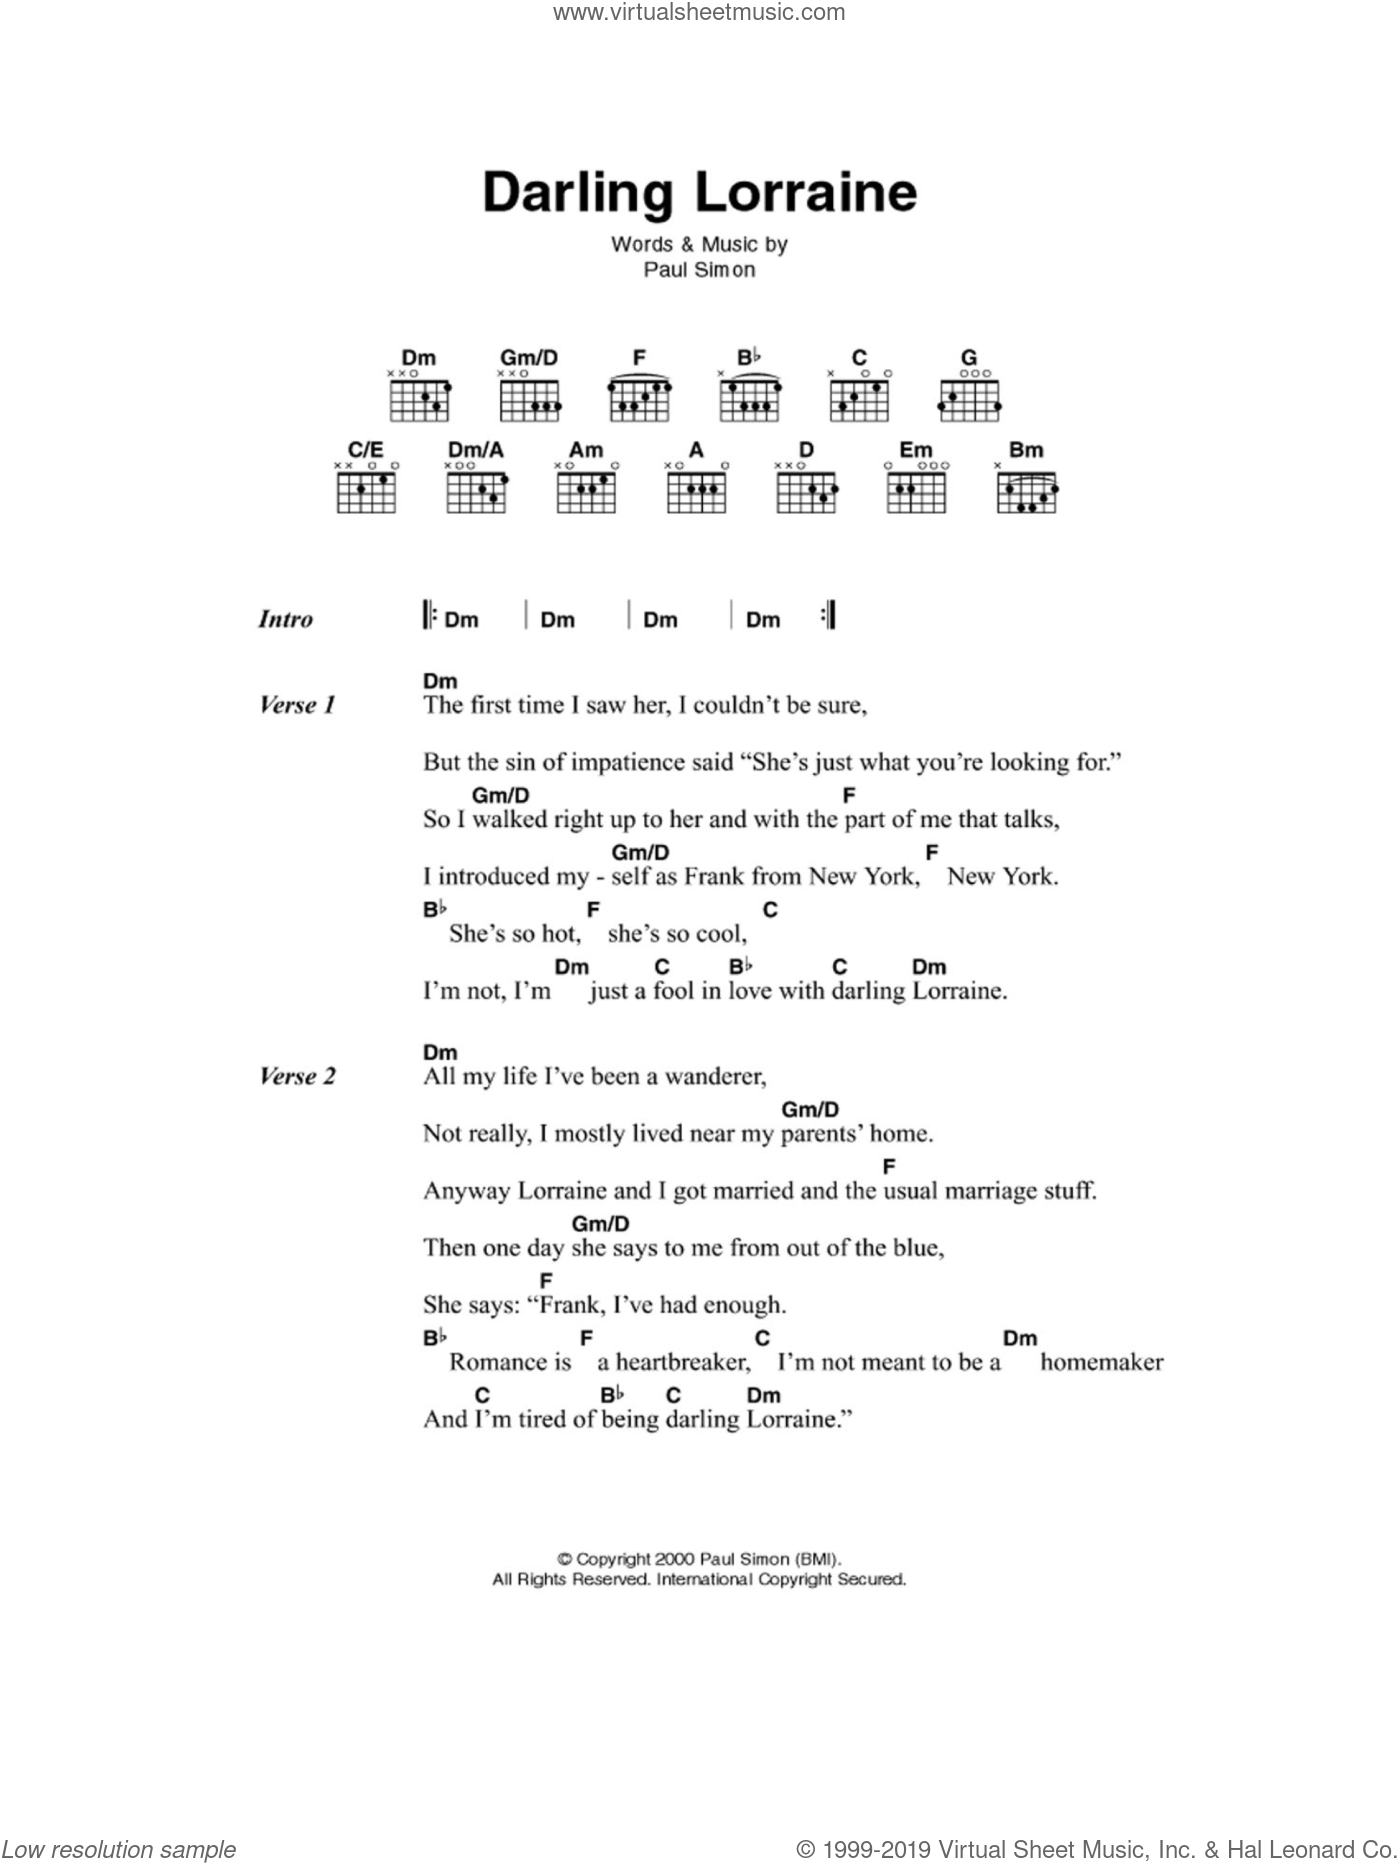 Darling Lorraine sheet music for guitar (chords) by Paul Simon